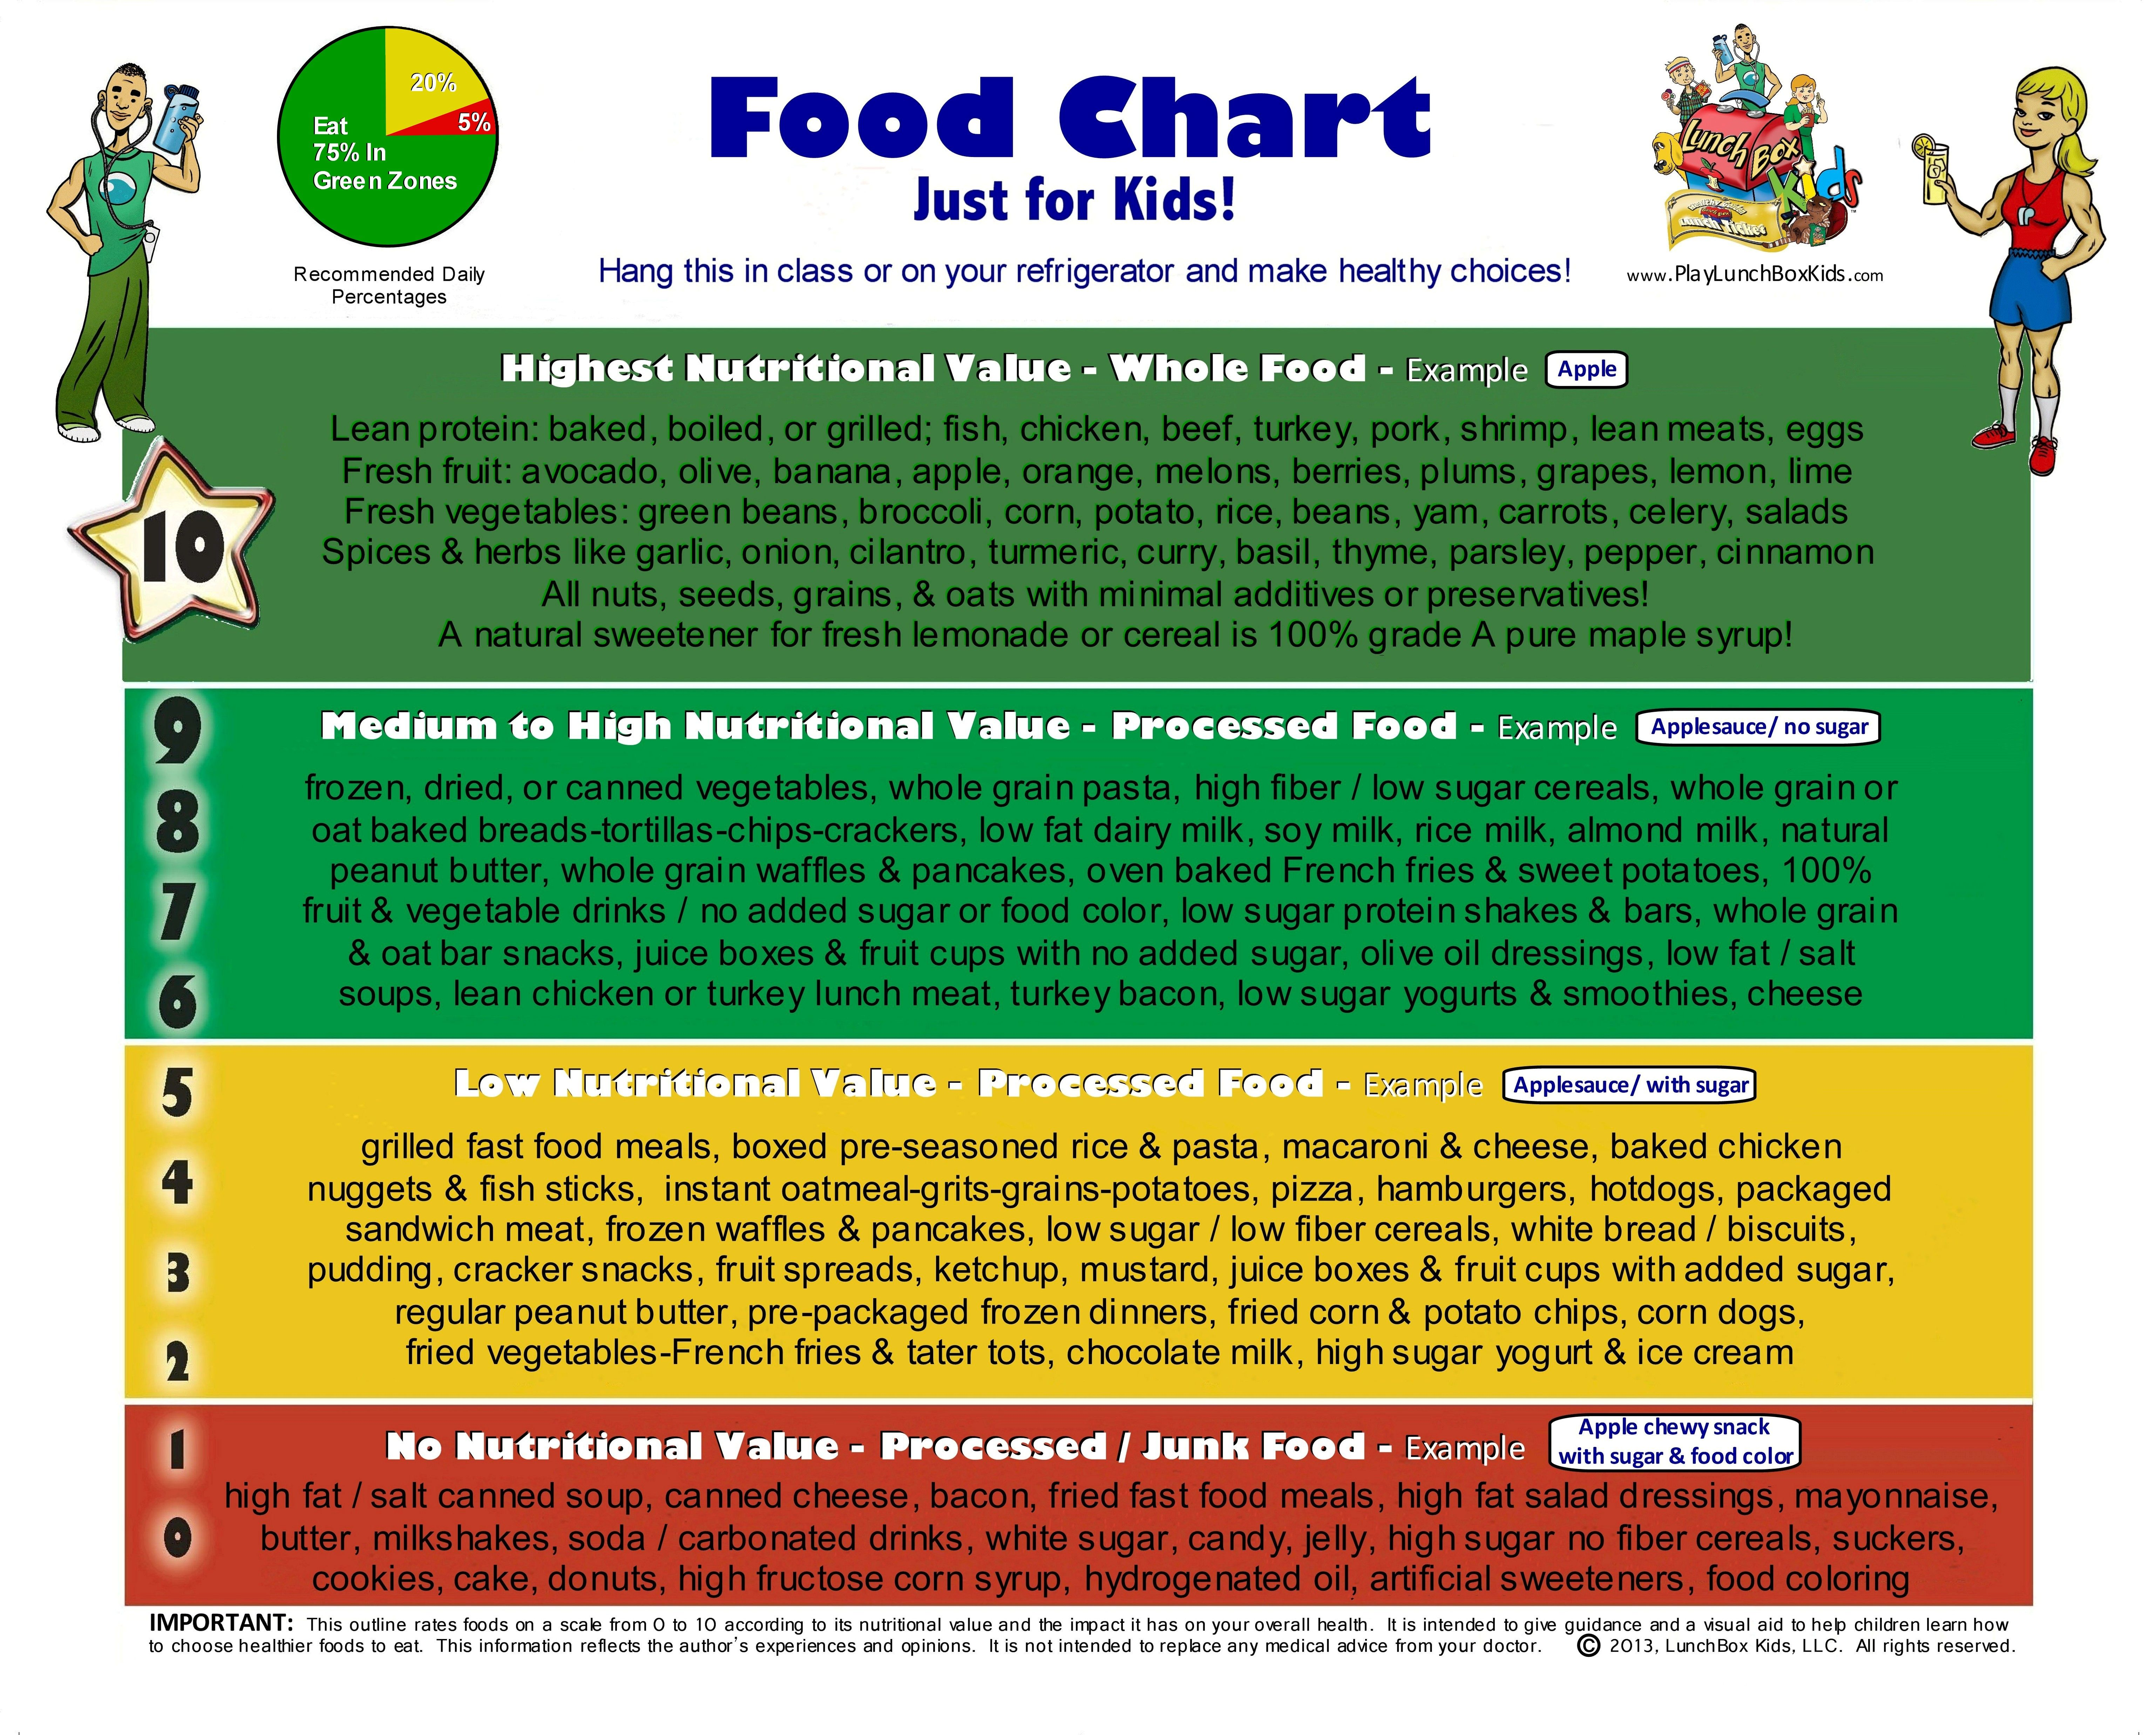 Food Scale Chart 0 10 From No Nutritional Value Junk Food